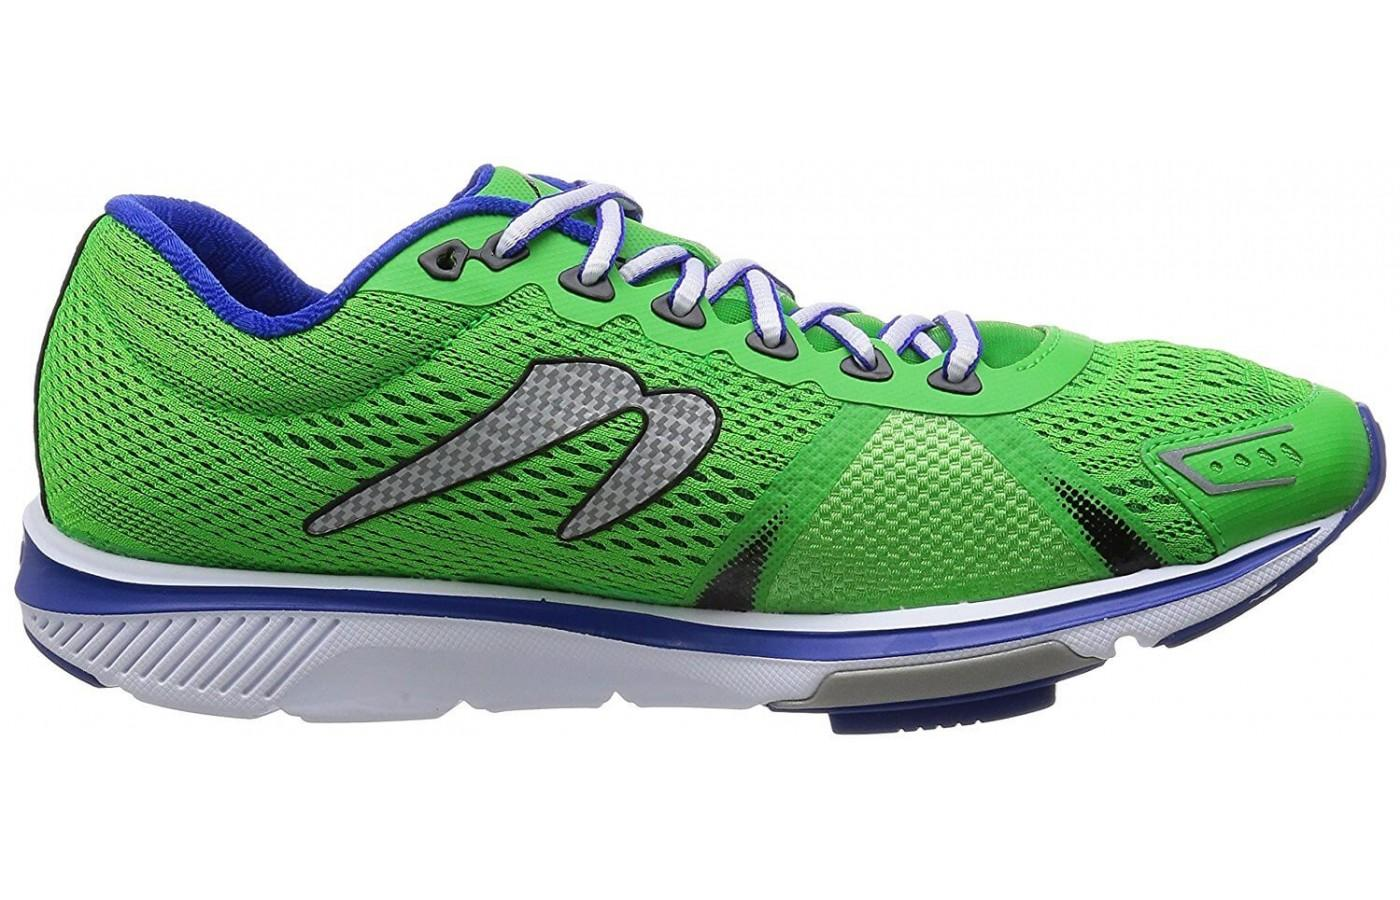 The upper provides maximum breathability to reduce moisture and discomfort.